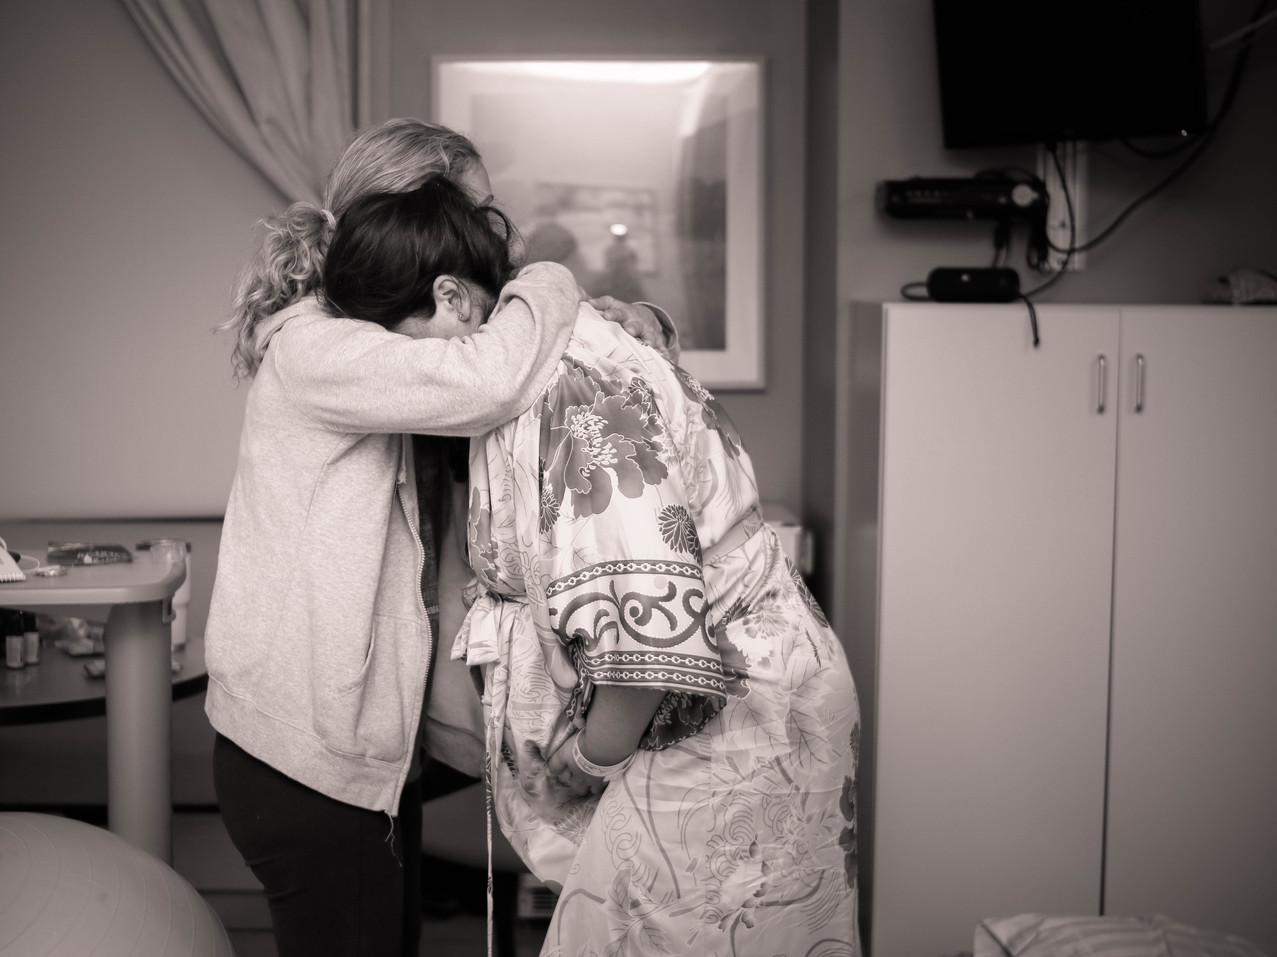 Mom leaning on Her doula during labor-Burg and roo photography-Hypnobirth-Joyous birthing-Kaiser Irvine-Birth Photographer-Orange County